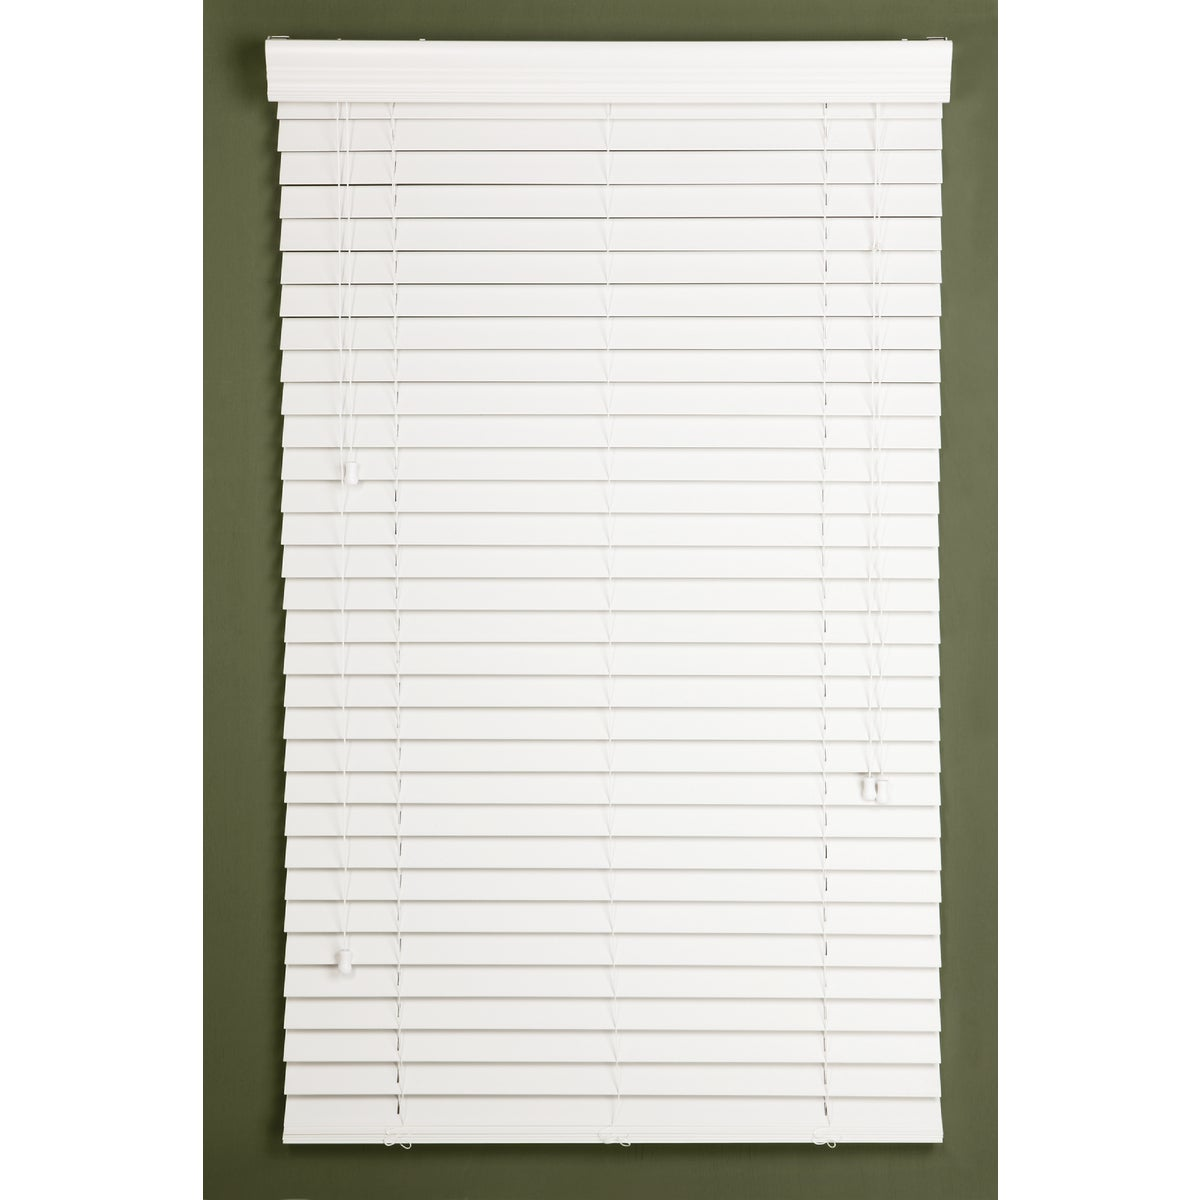 27X64 WHITE FAUX BLIND - 628066 by Lotus Wind Incom